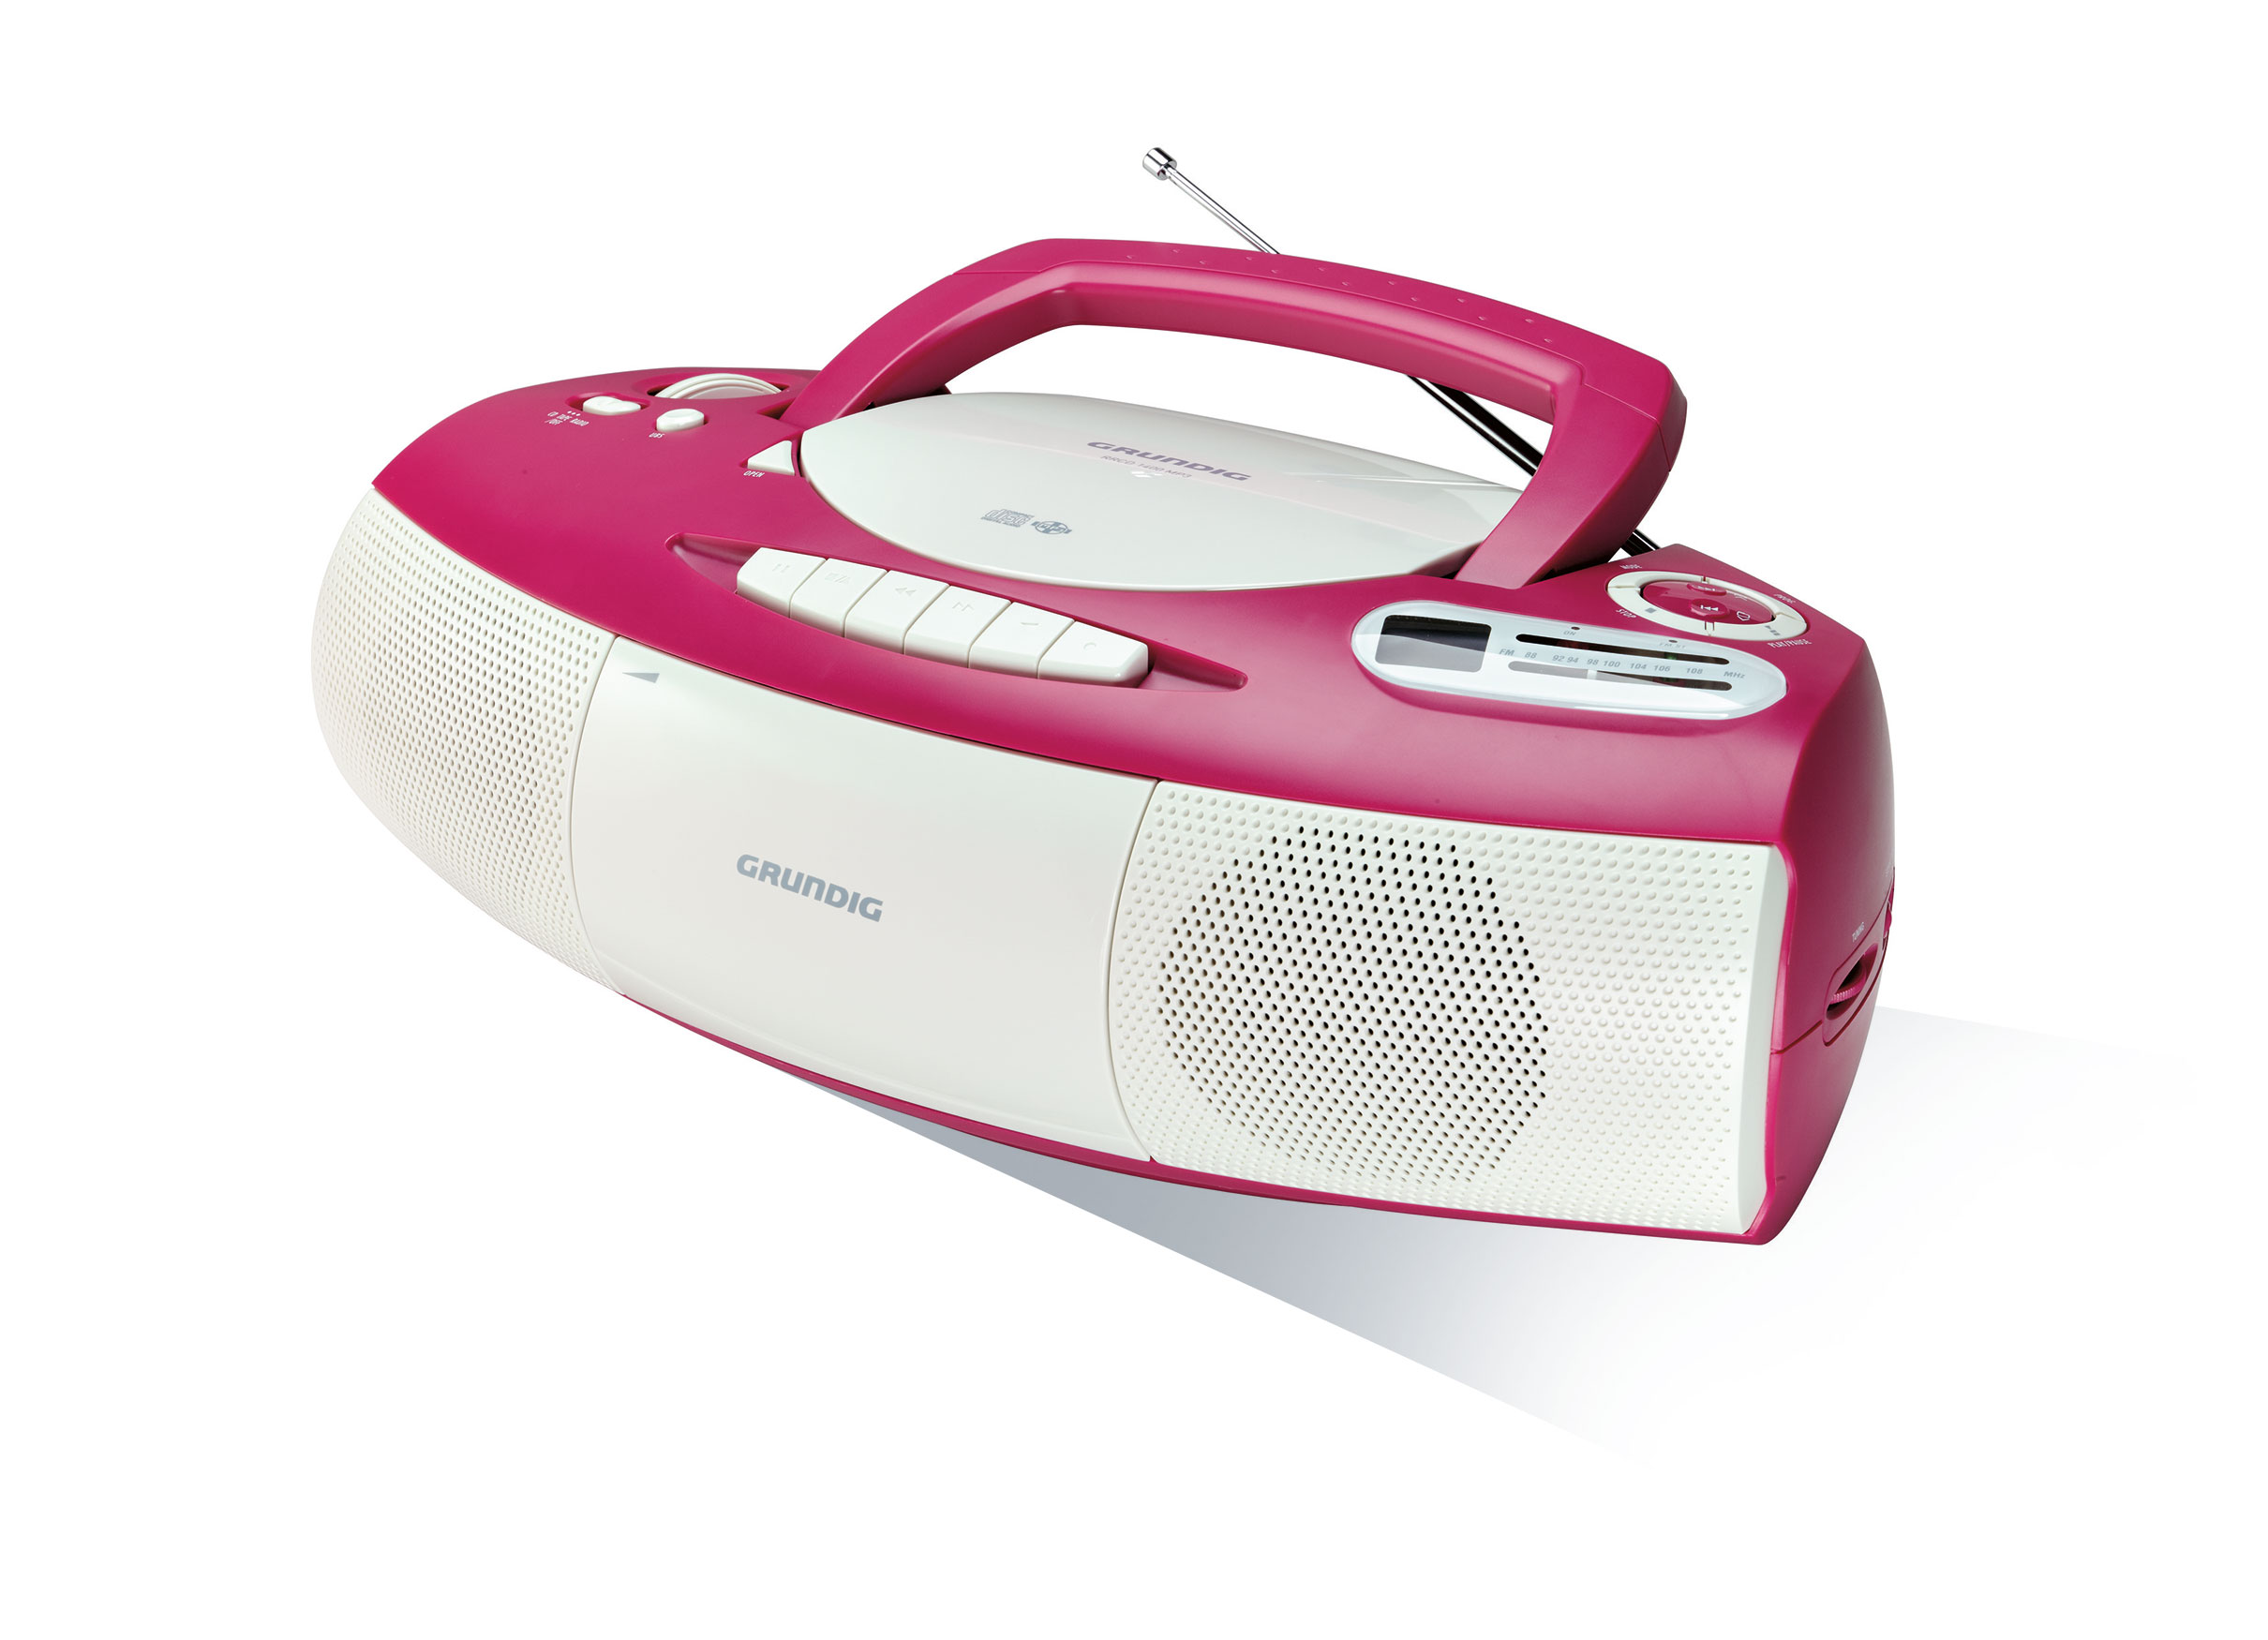 grundig rrcd 1400 radio cd spieler cassetten recorder pink wei ebay. Black Bedroom Furniture Sets. Home Design Ideas